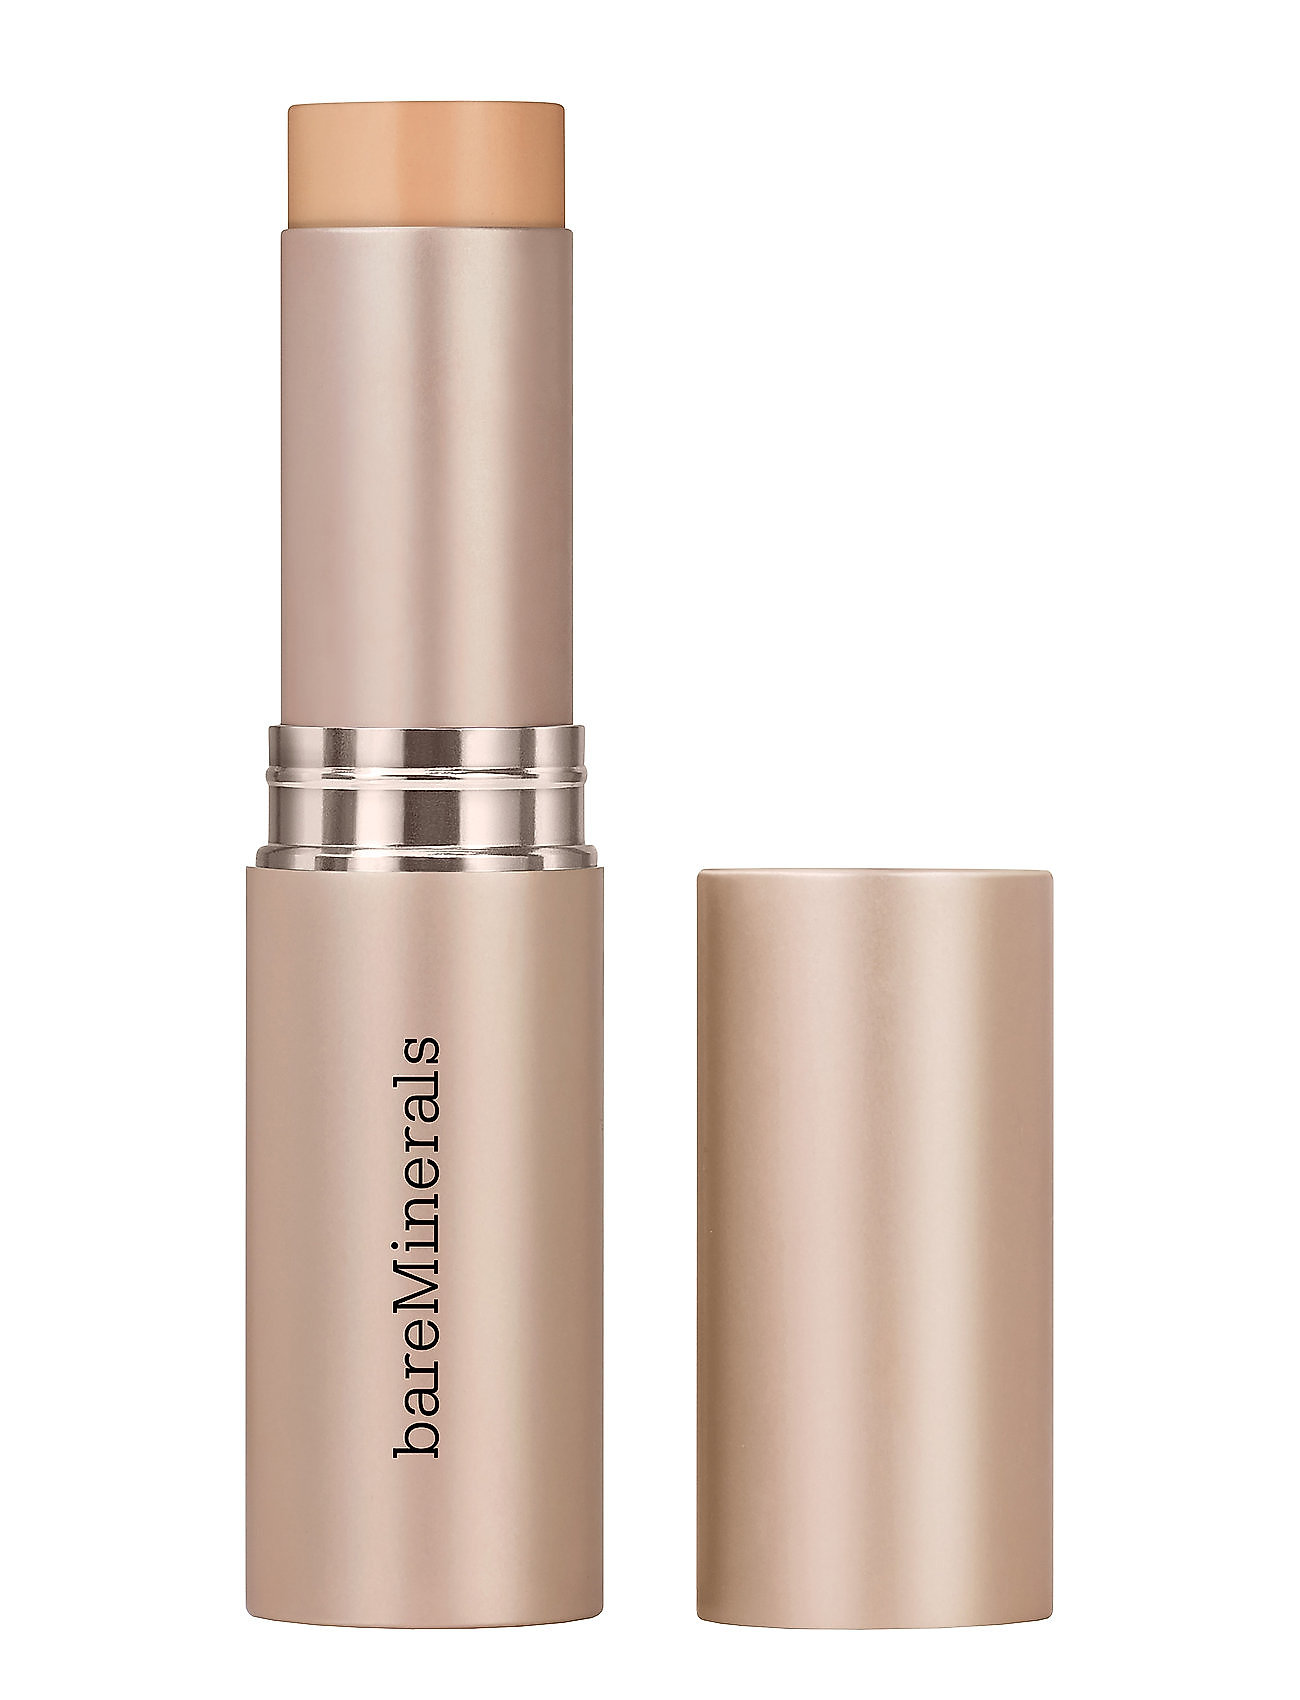 Image of Complexion Rescue Hydrating Foundation Stick Spf 25 Foundation Makeup BareMinerals (3250586897)